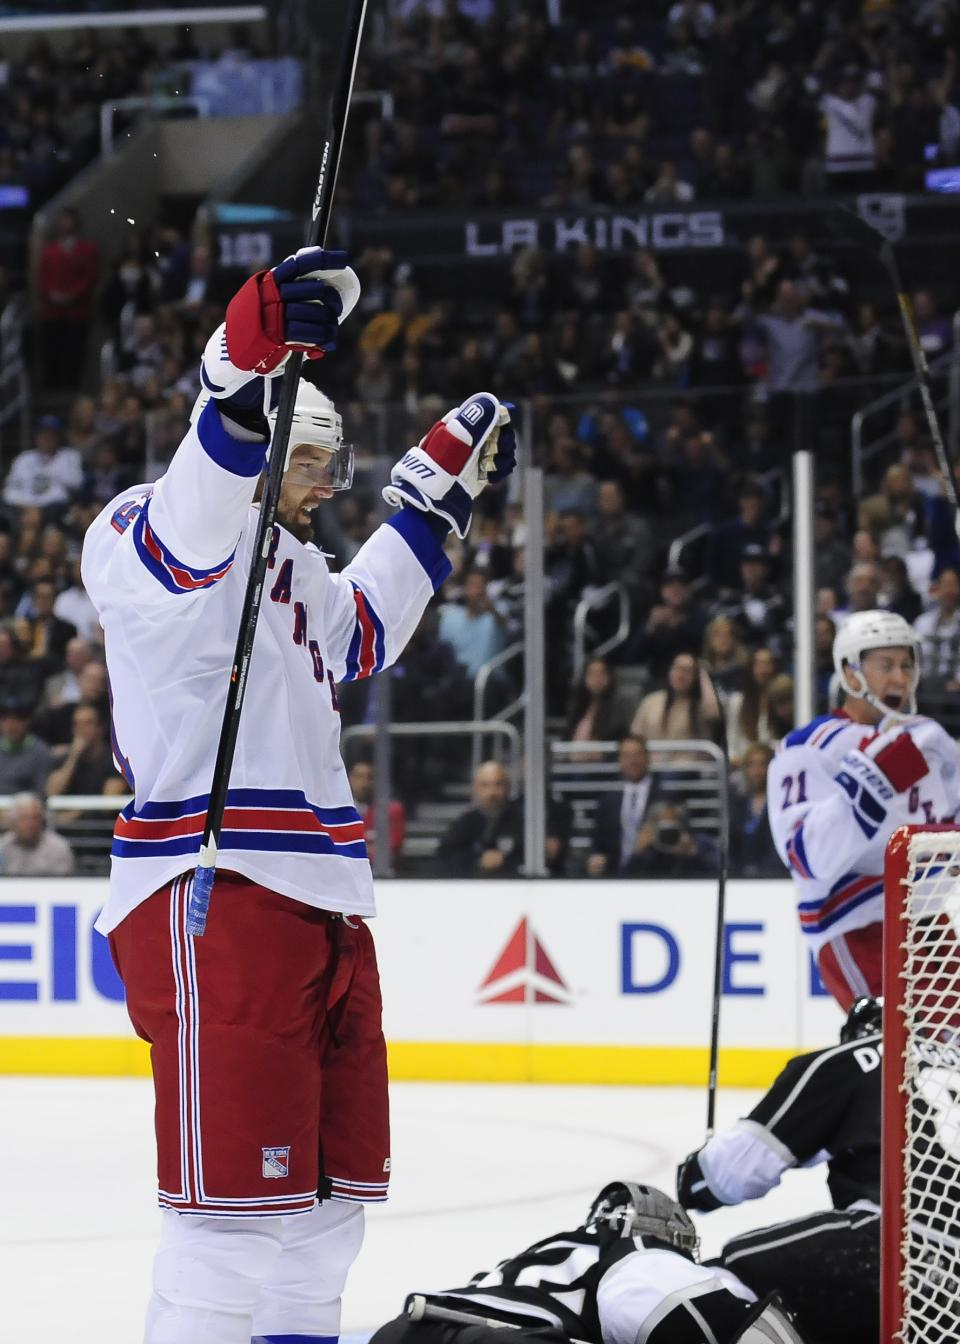 NY Rangers beat LA Kings 3-1 with Quick's mistake